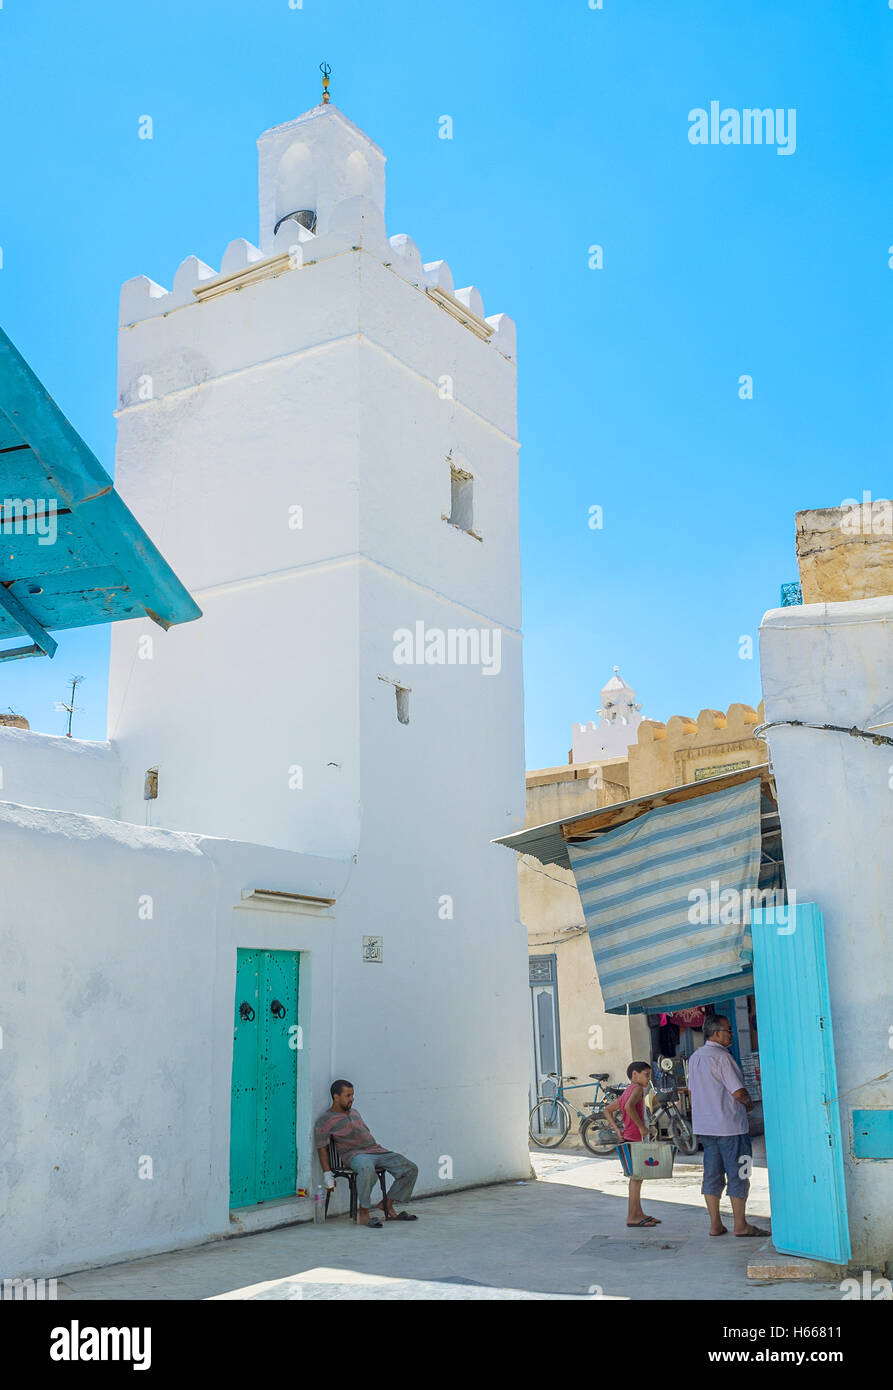 The tiny mosque on the narrow street of Medina built in the same style as residential houses - Stock Image